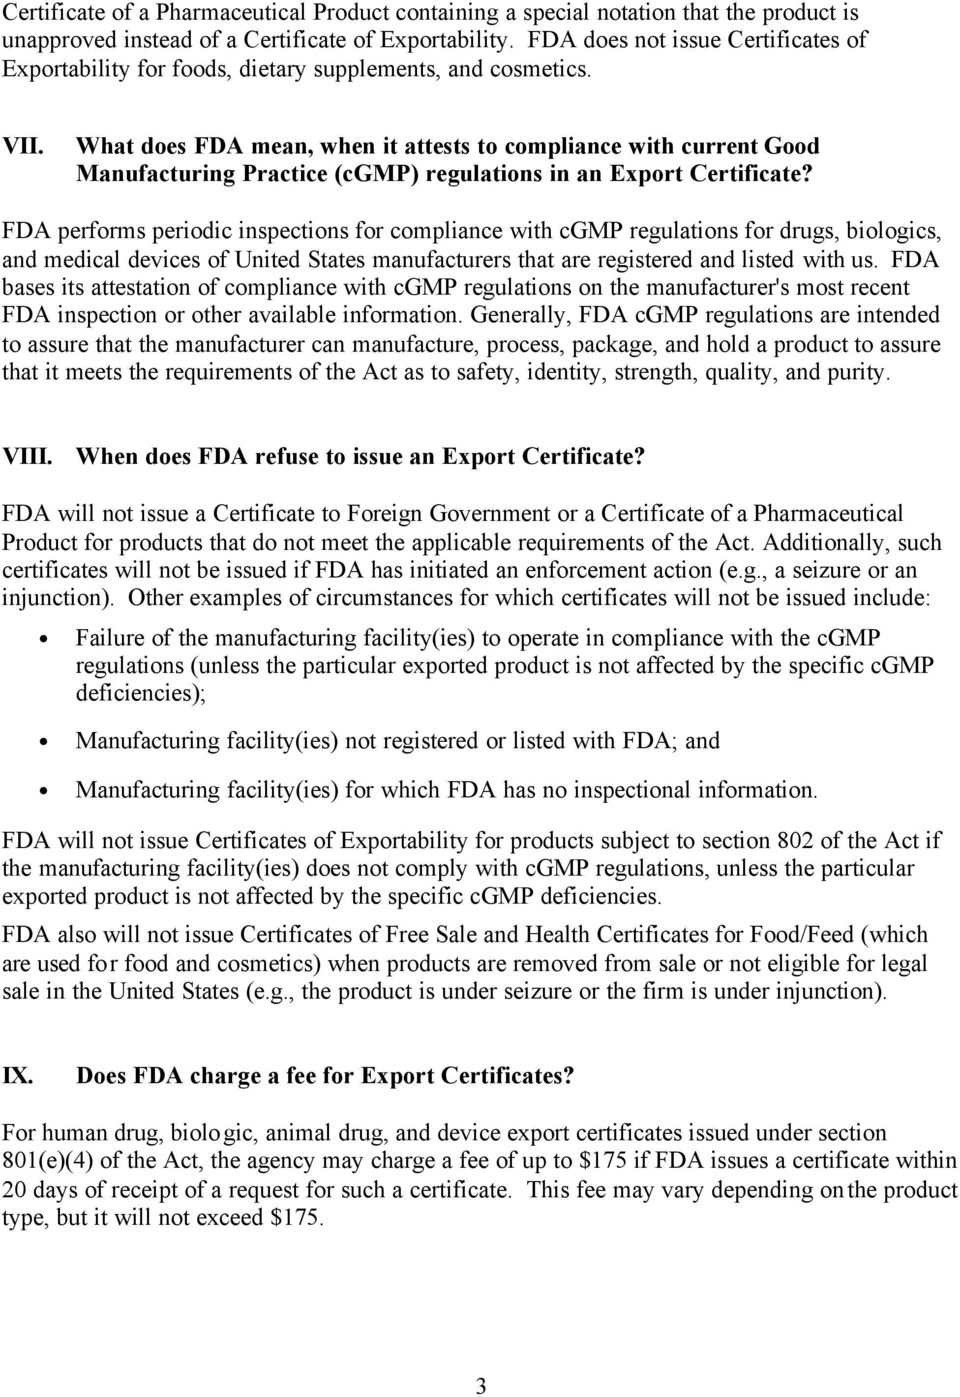 What does FDA mean, when it attests to compliance with current Good Manufacturing Practice (cgmp) regulations in an Export Certificate?